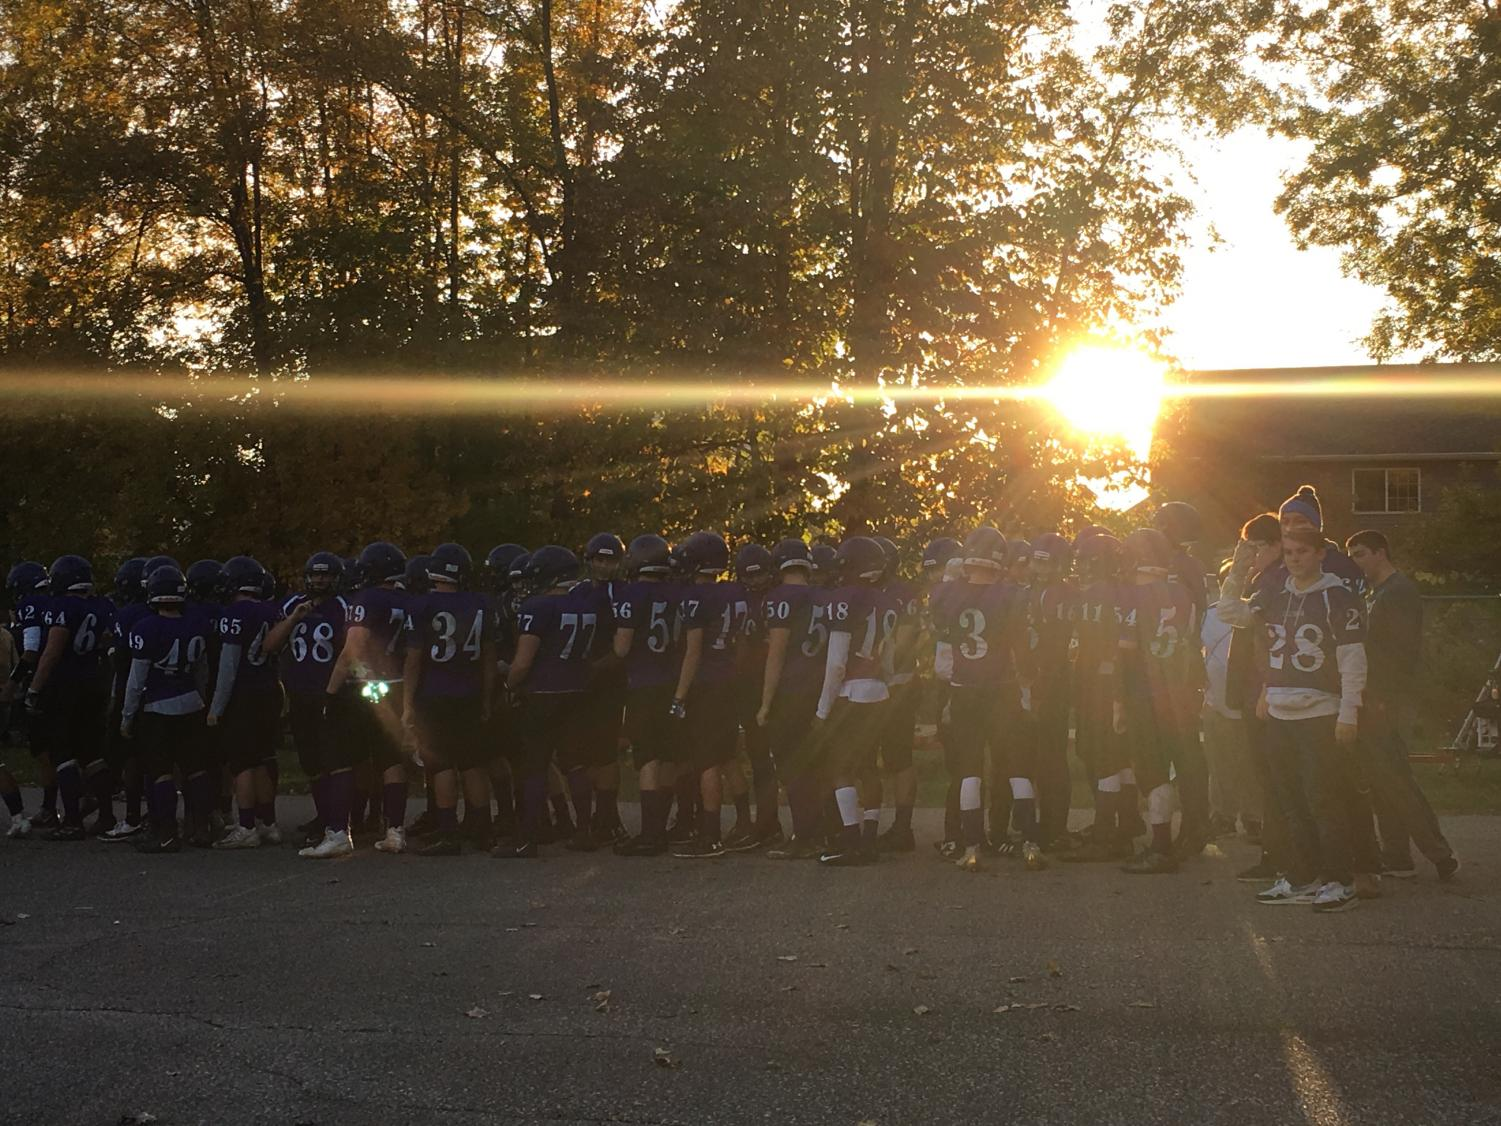 The Caledonia Fighting Scots are ready for their game.